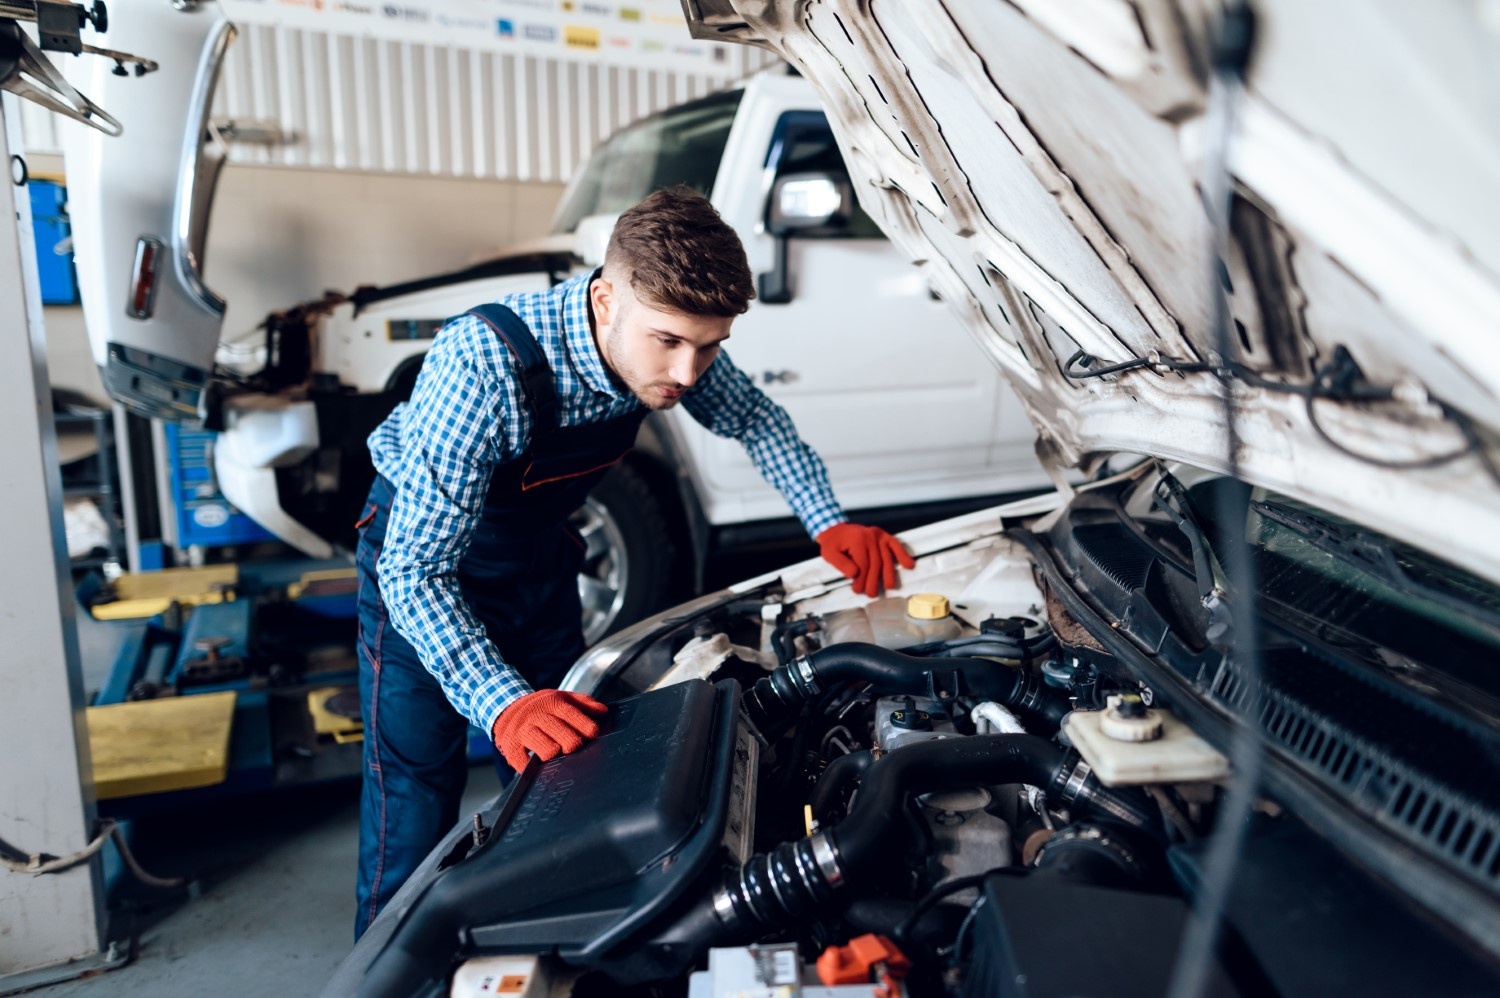 stock-photo-a-young-man-works-at-a-service-station-the-mechanic-is-engaged-in-repairing-the-car-young-767208661-min